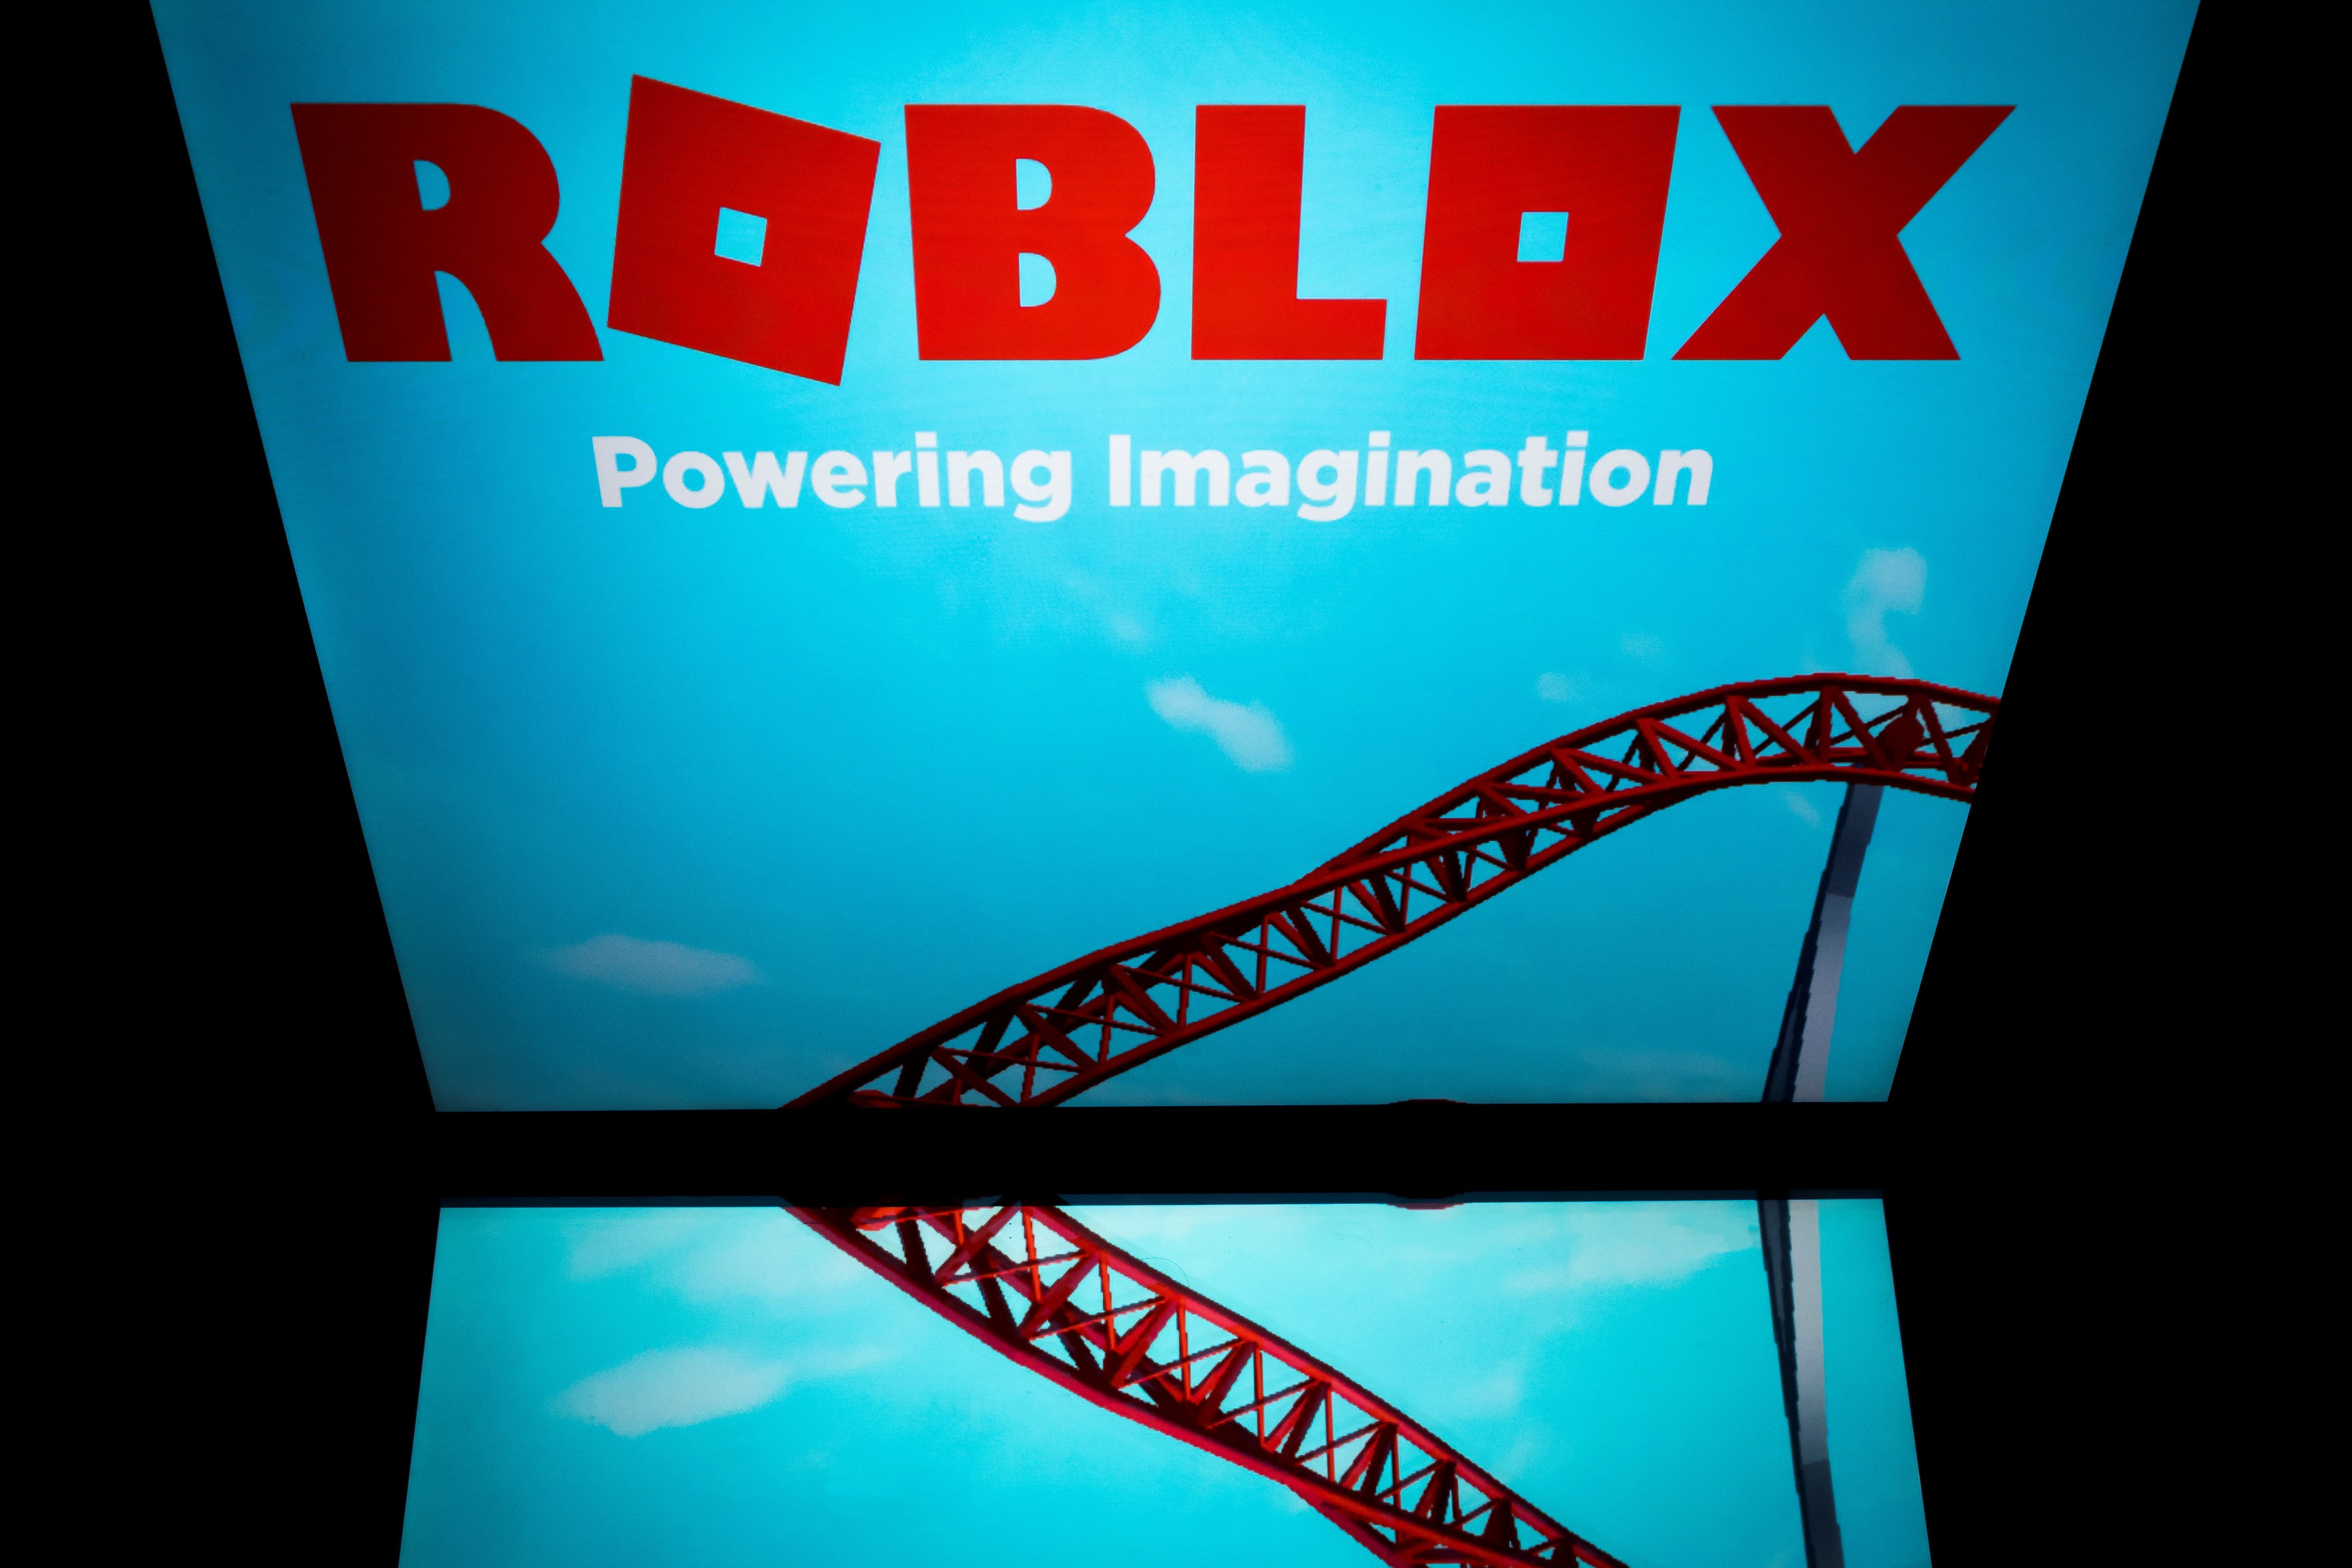 Extremists creep into Roblox, an online game popular with children